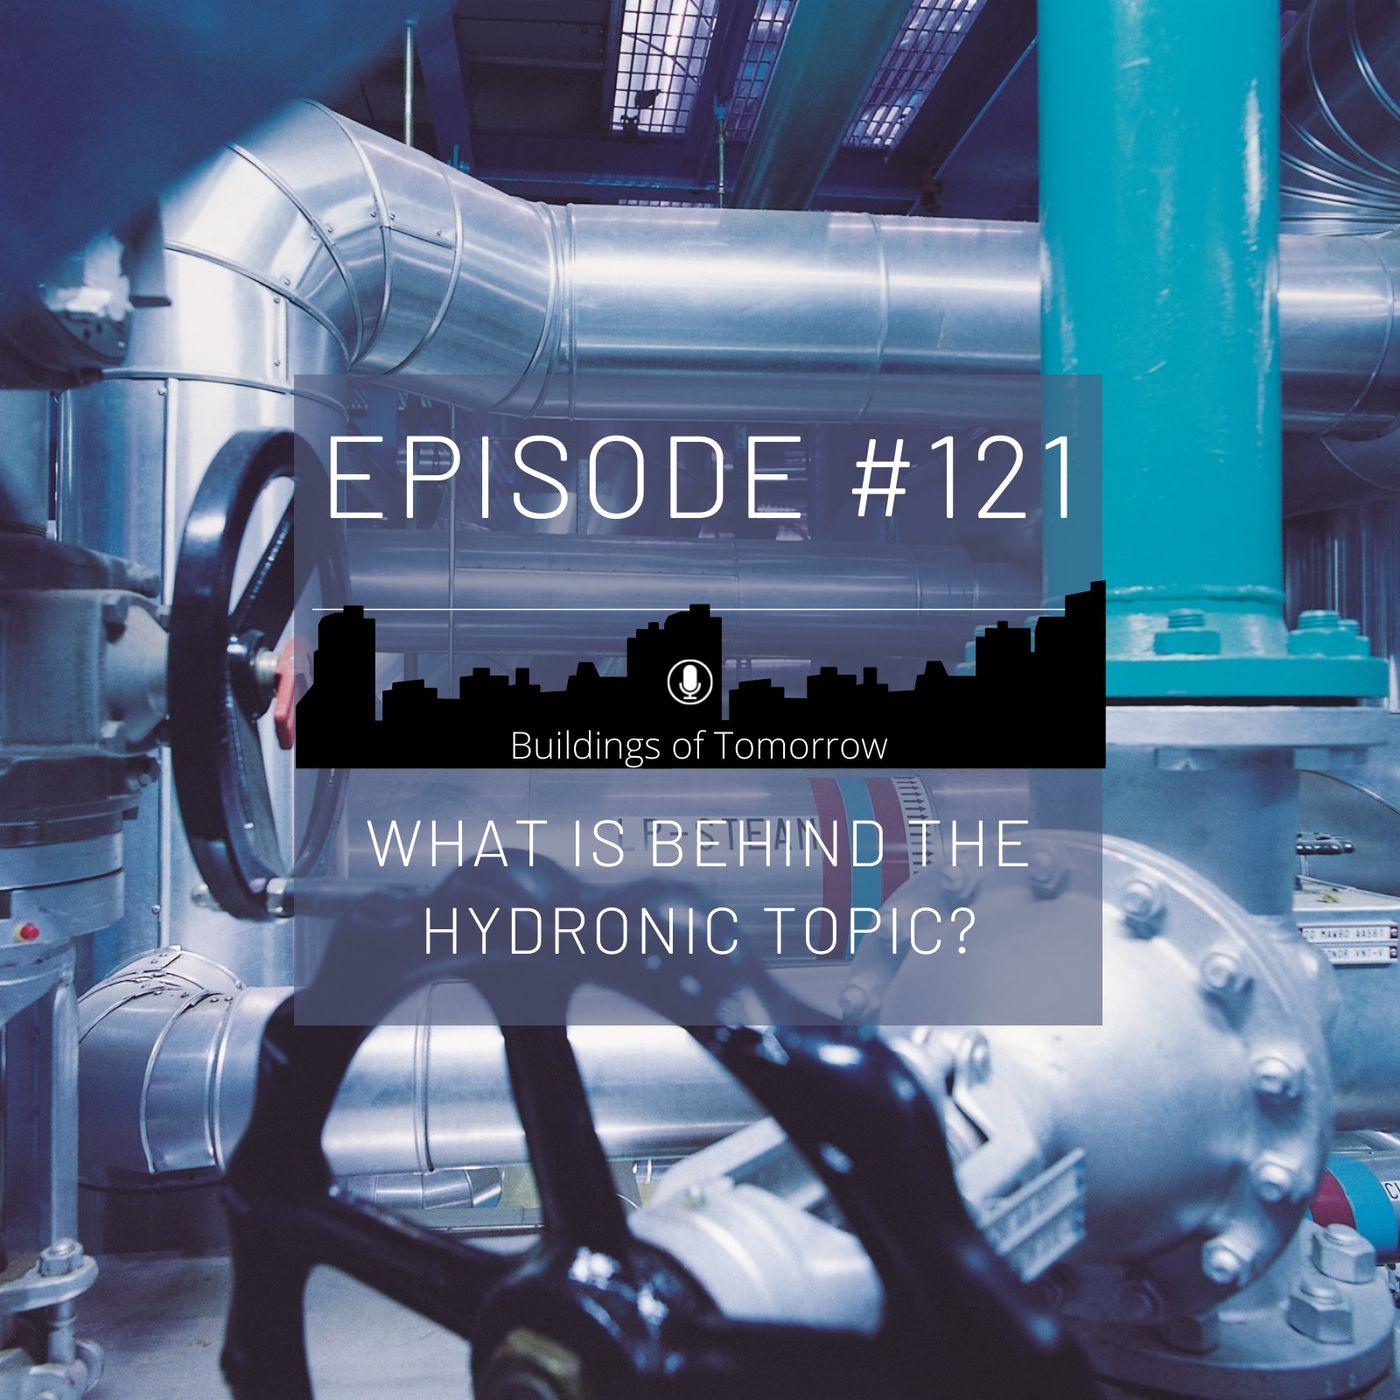 #121 What is behind the hydronics topic?